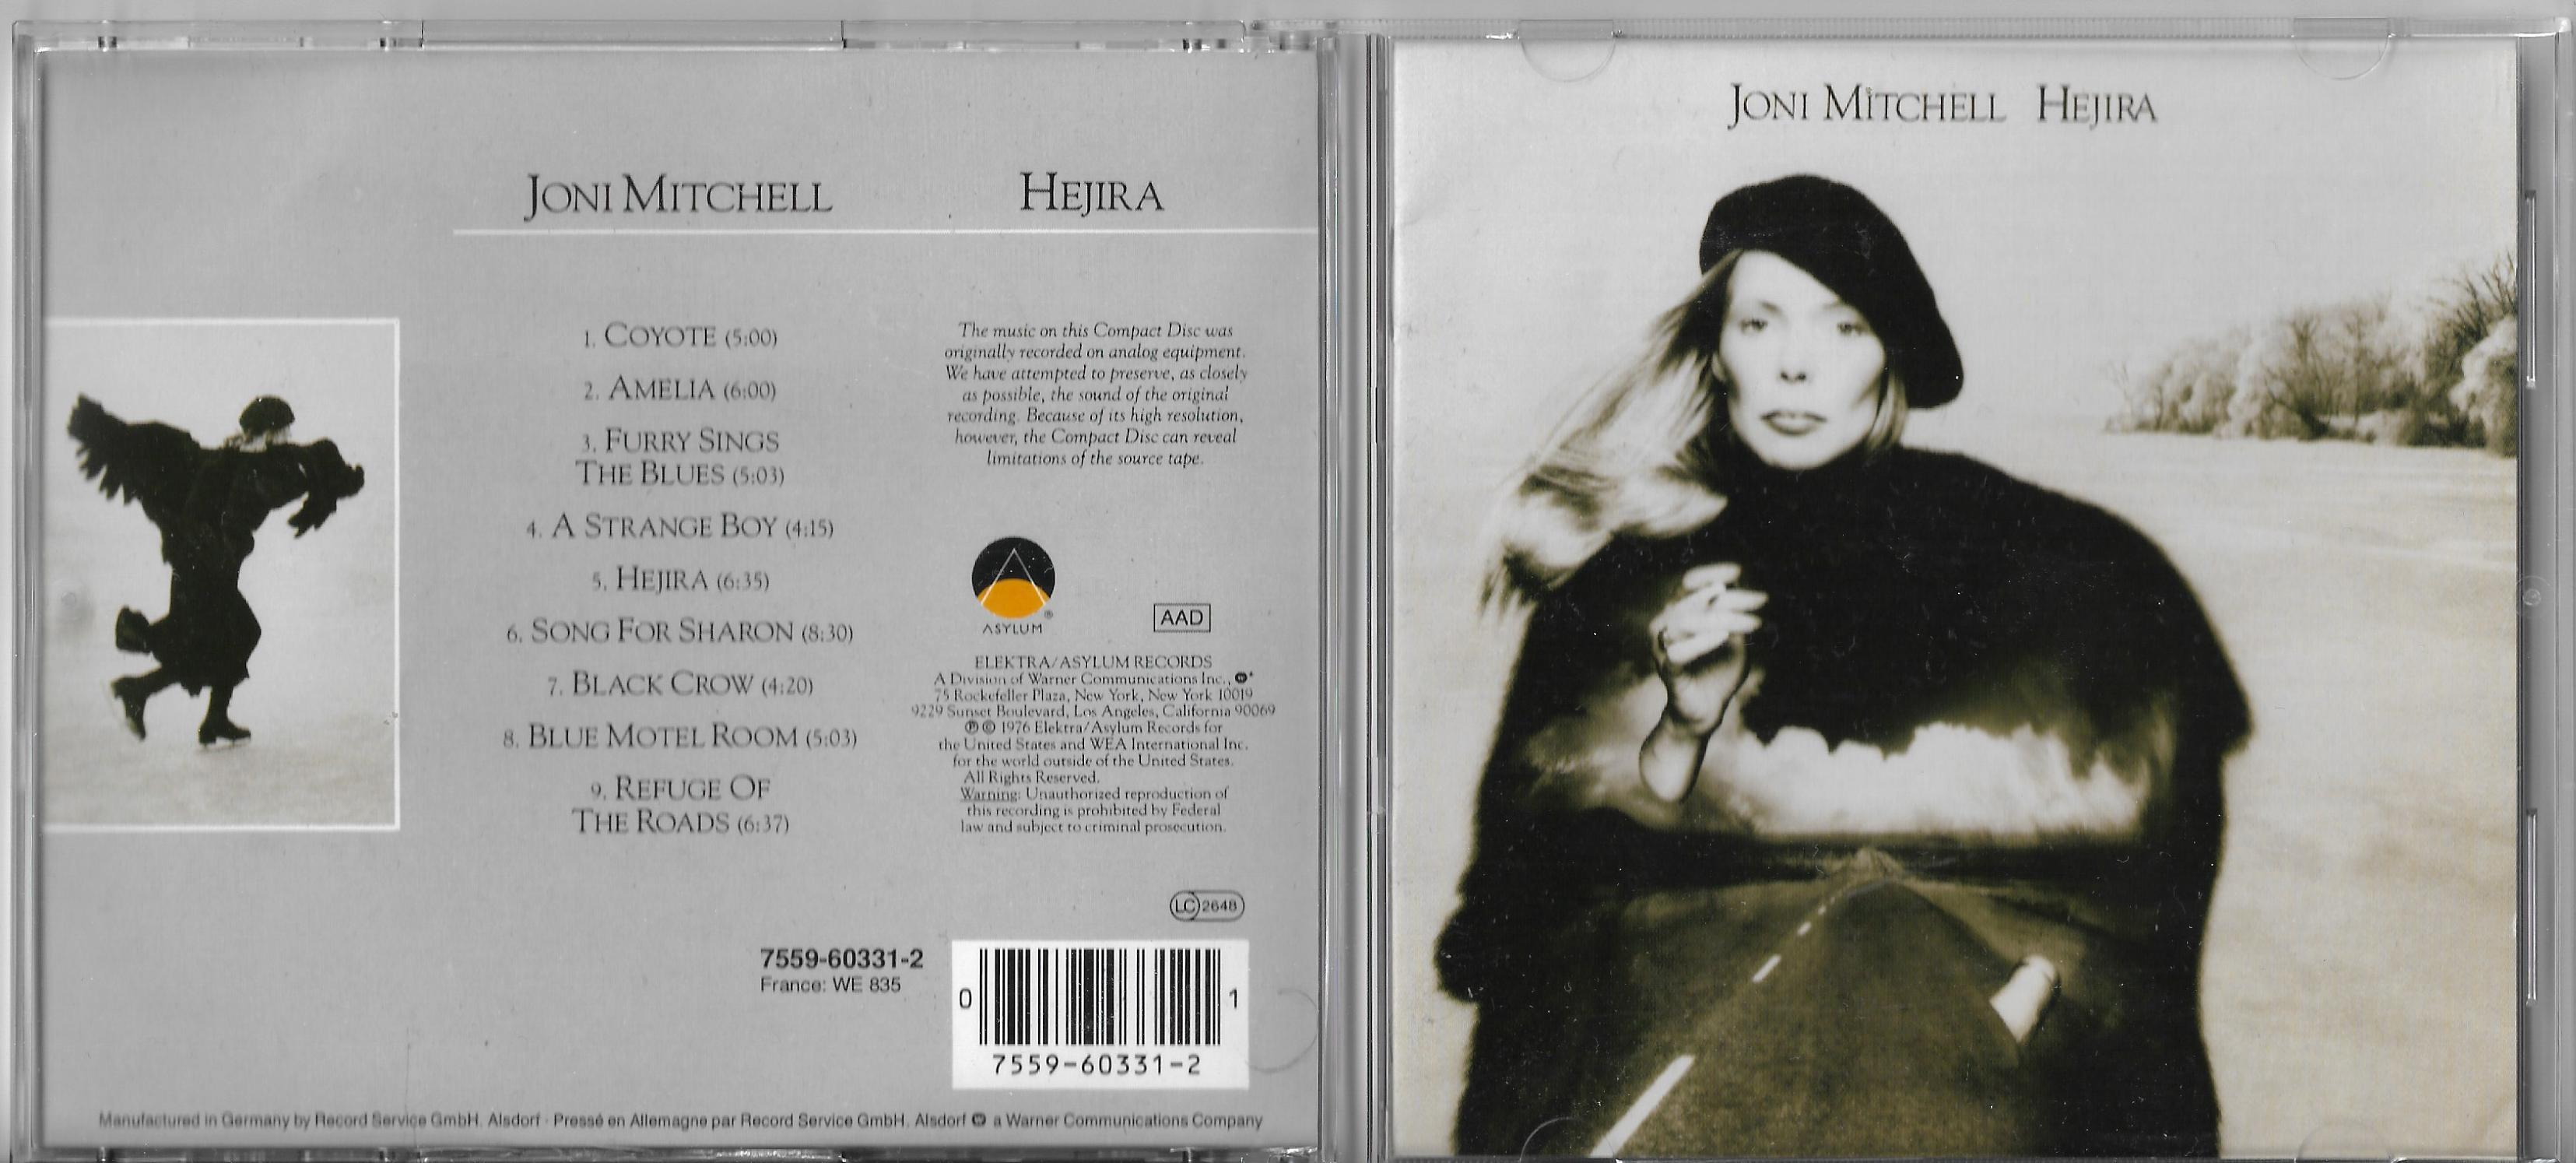 JONI MITCHELL - Both Sides Now - Promo CARD SLEEVE - CD